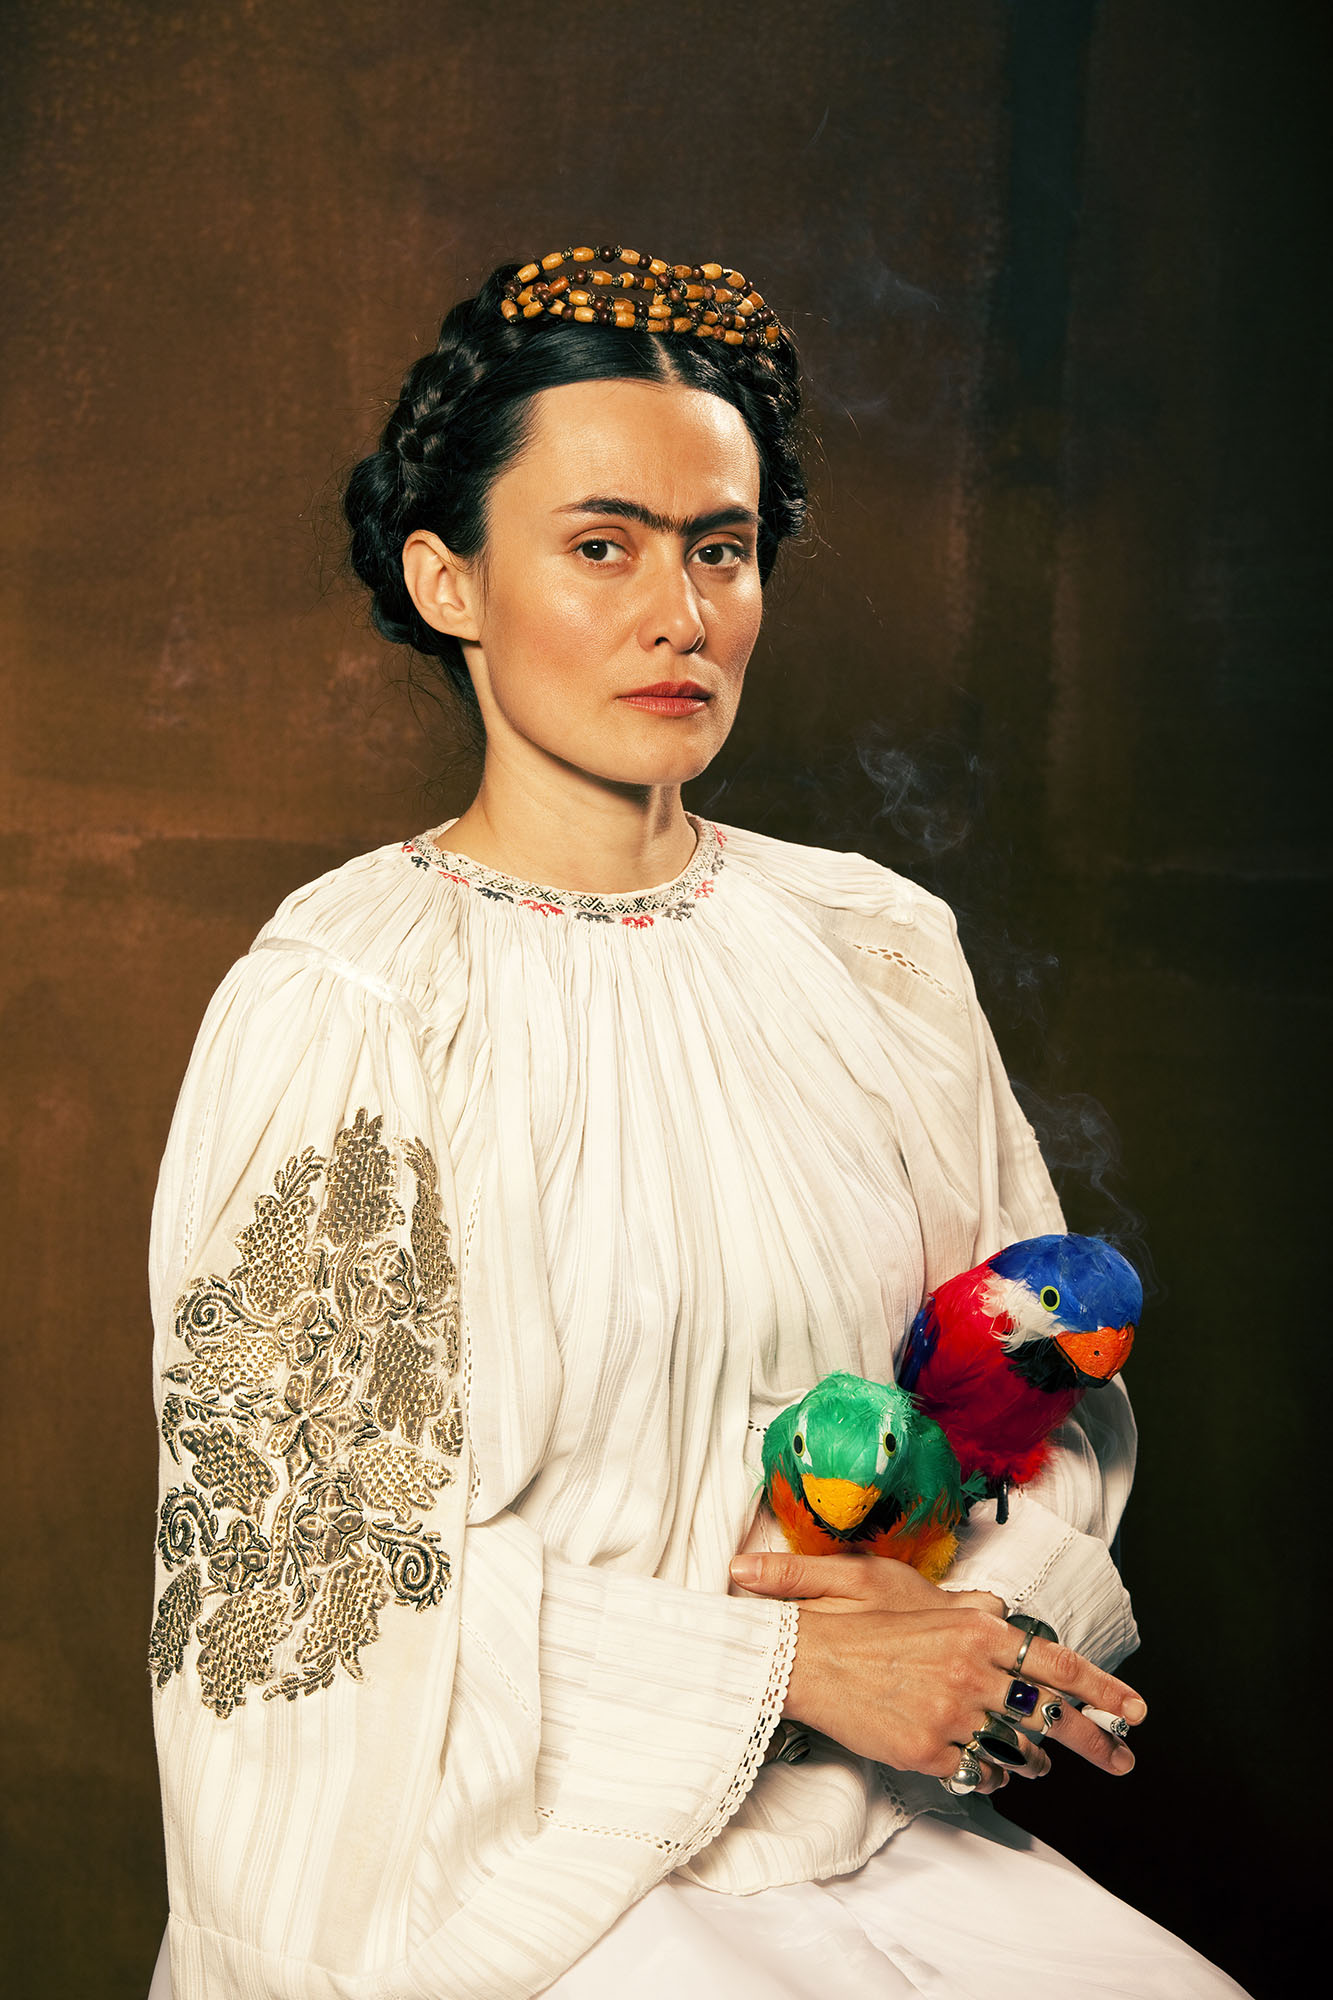 A journey through the eyes of frida kahlo